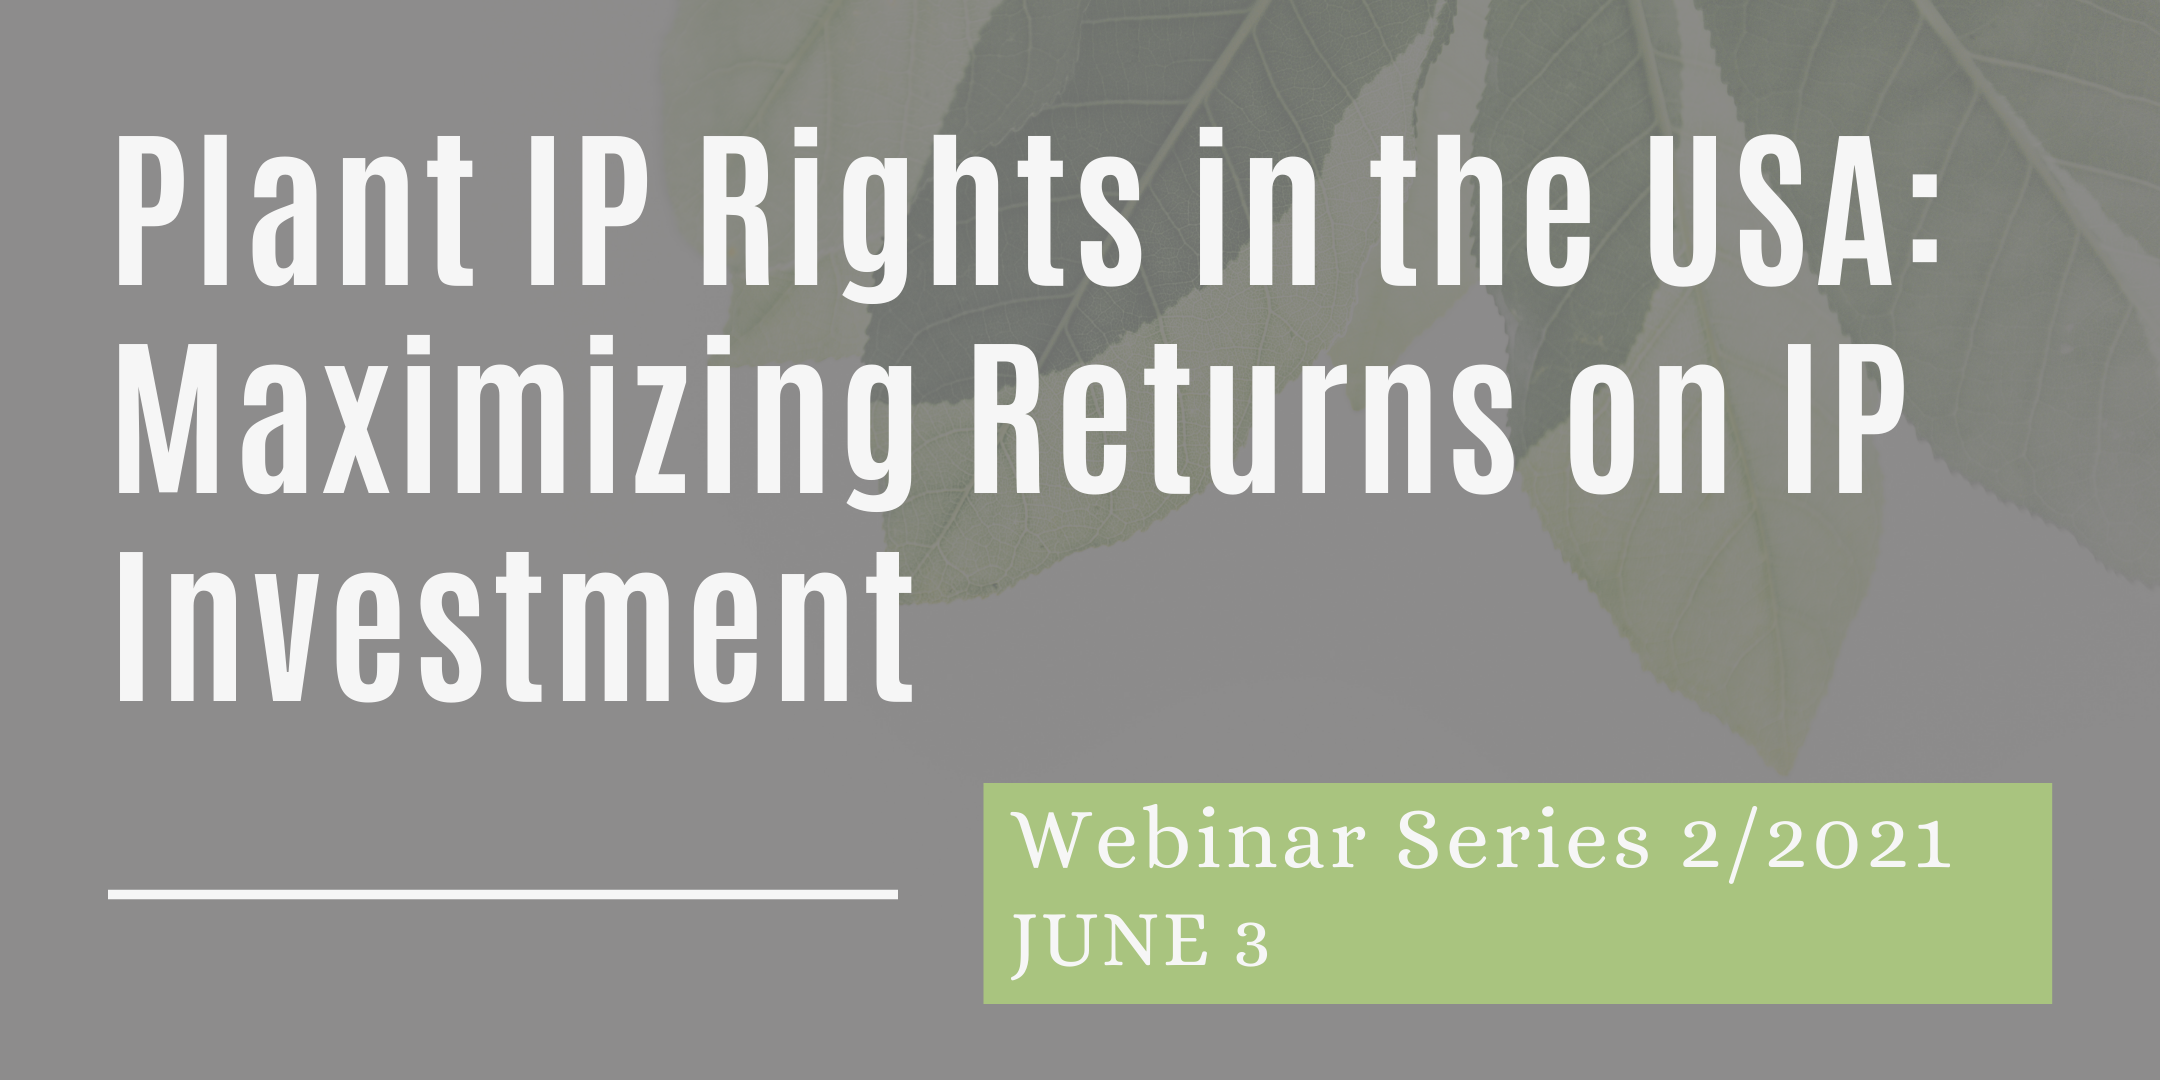 03/06/2021 – Plant IP Rights in the USA: Maximizing Returns on IP Investment